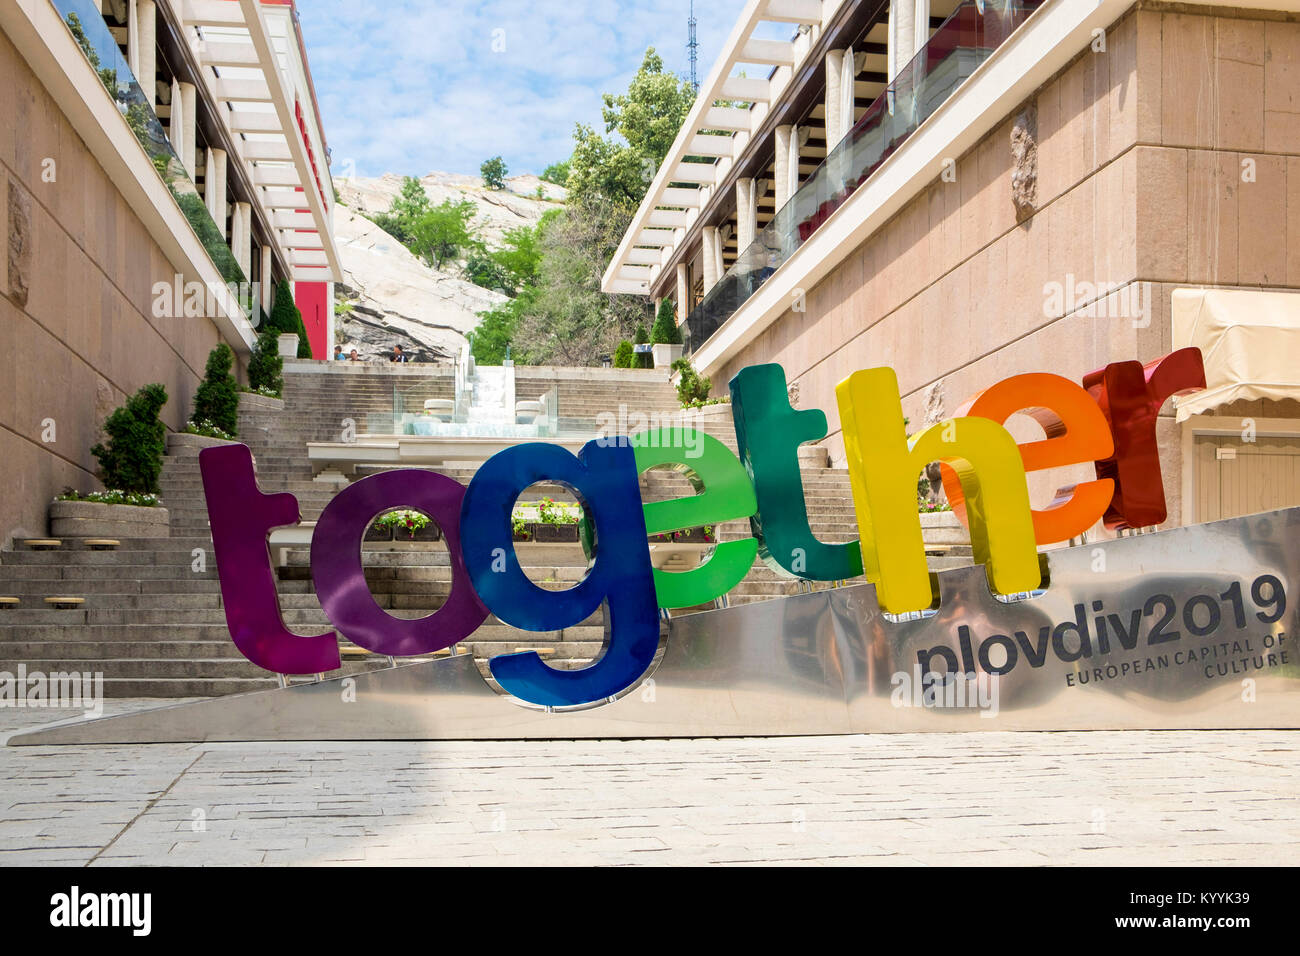 European Capital of Culture sign, Plovdiv 2019 in the city, Plovdiv , Bulgaria, Europe - Stock Image